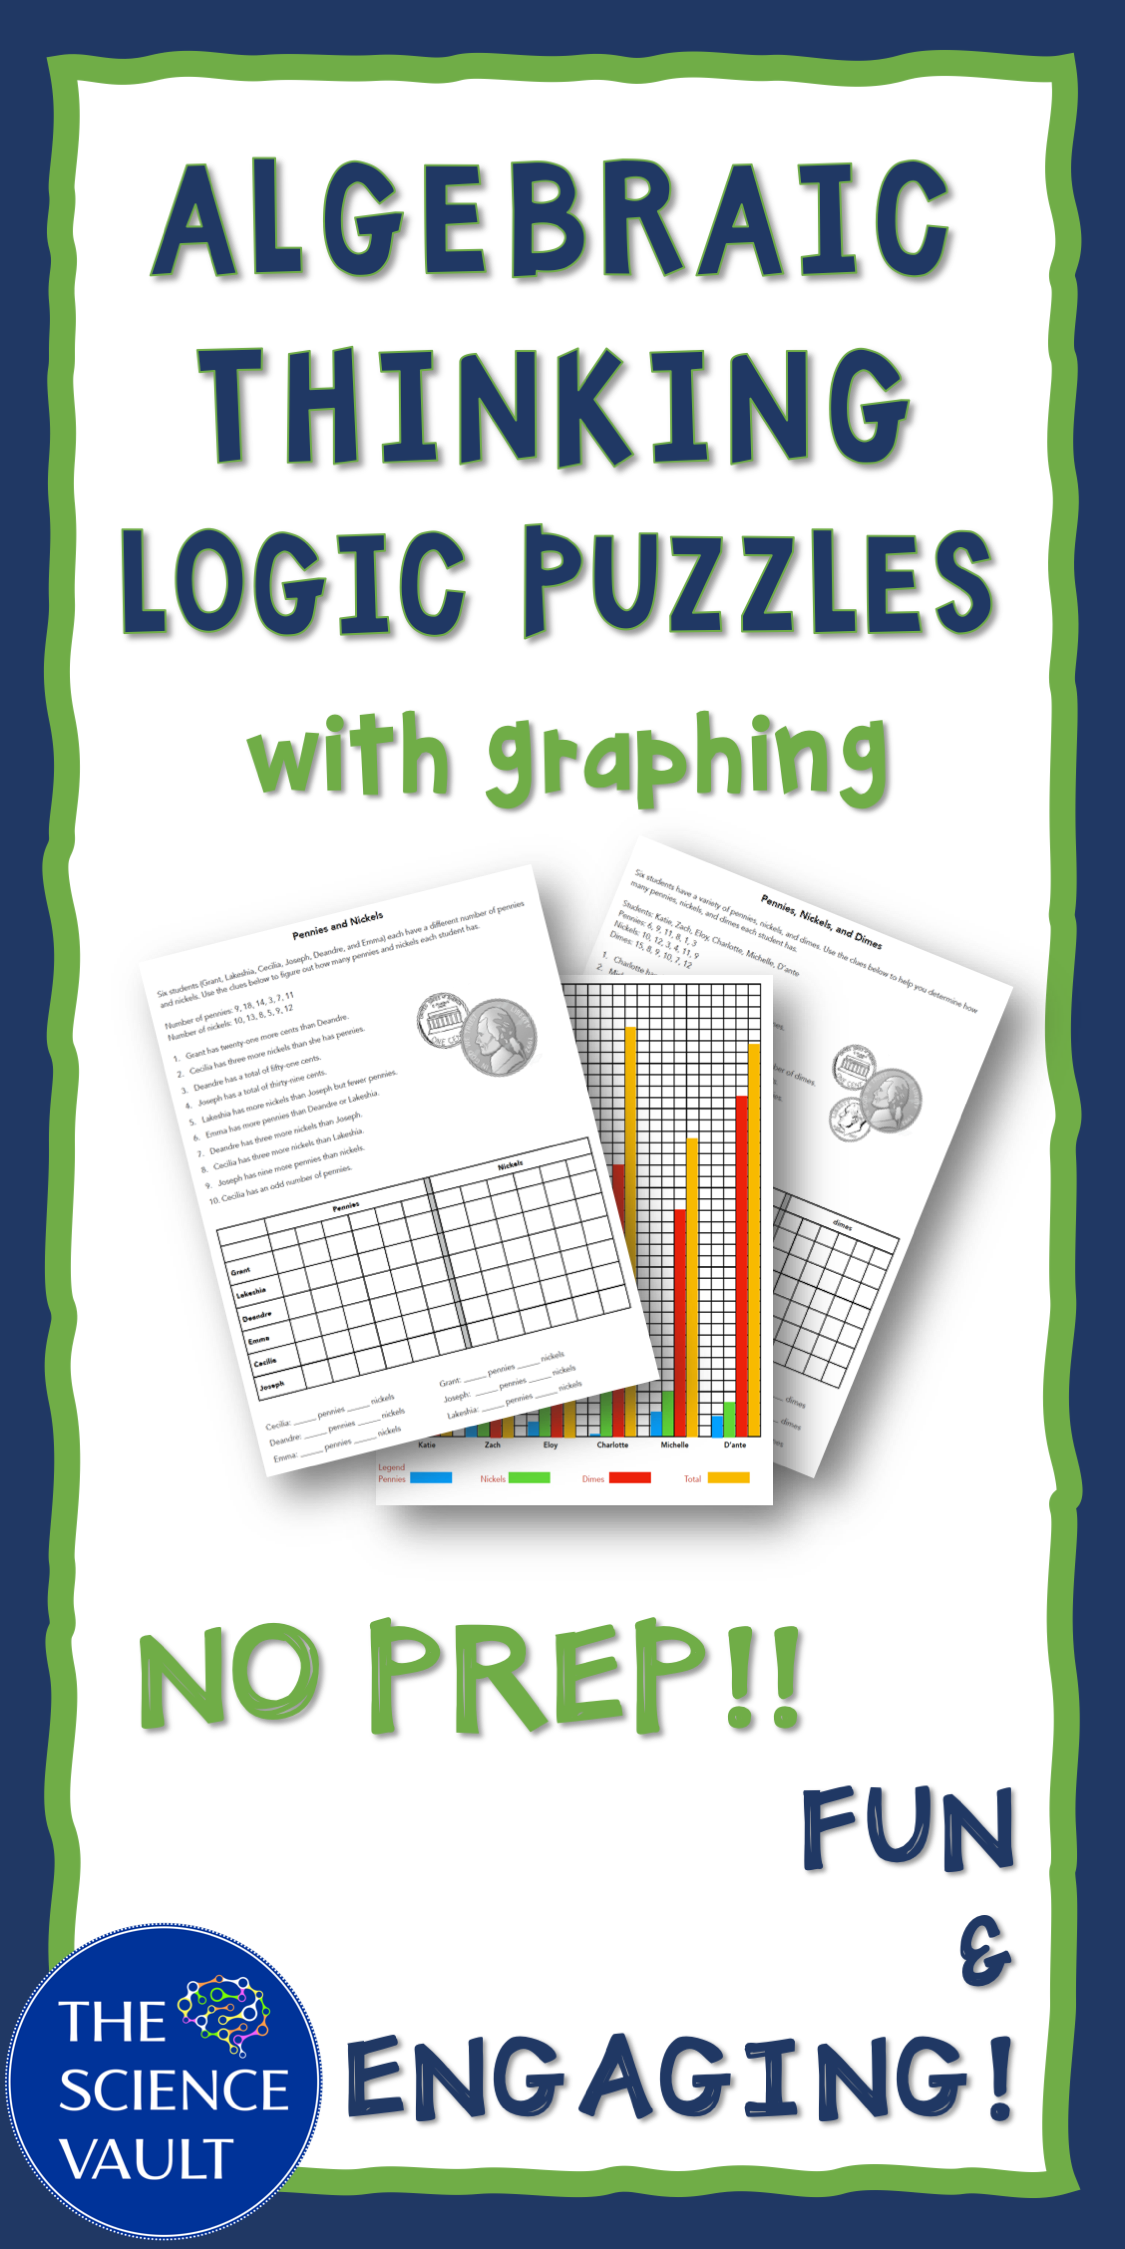 Algebraic Thinking Logic Puzzles Plus Graphing For